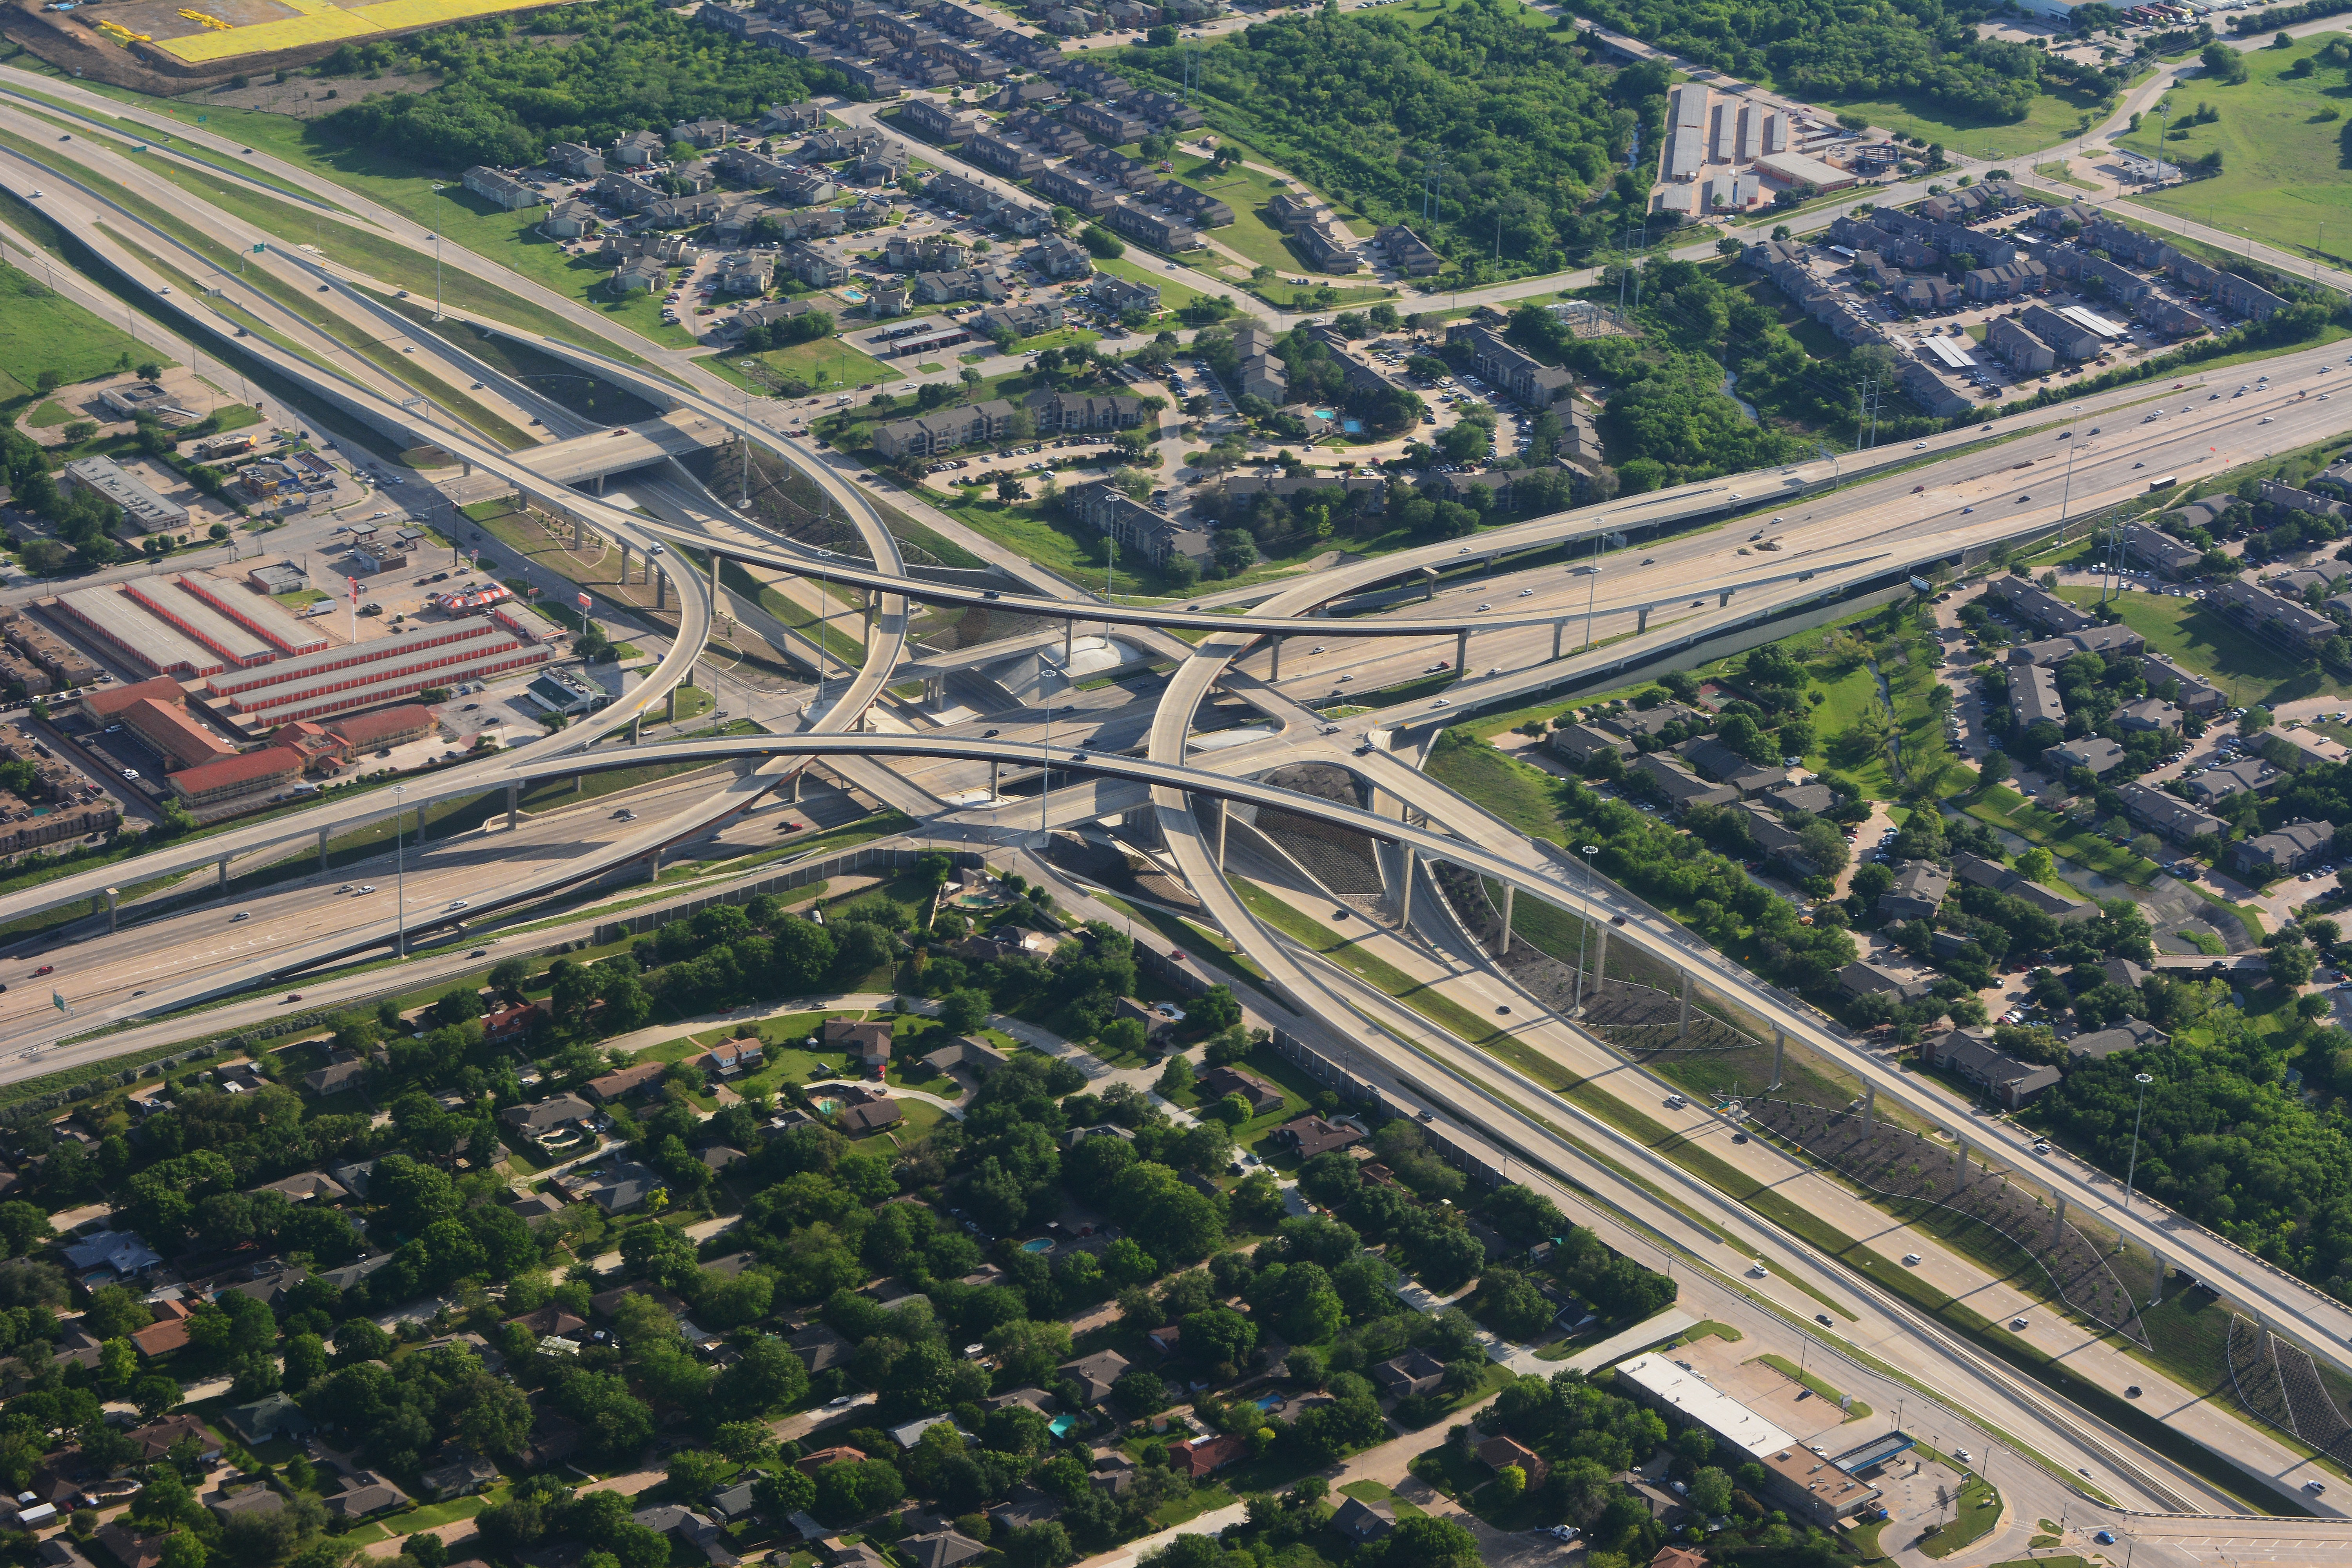 Drone view of a busy highway and buildings